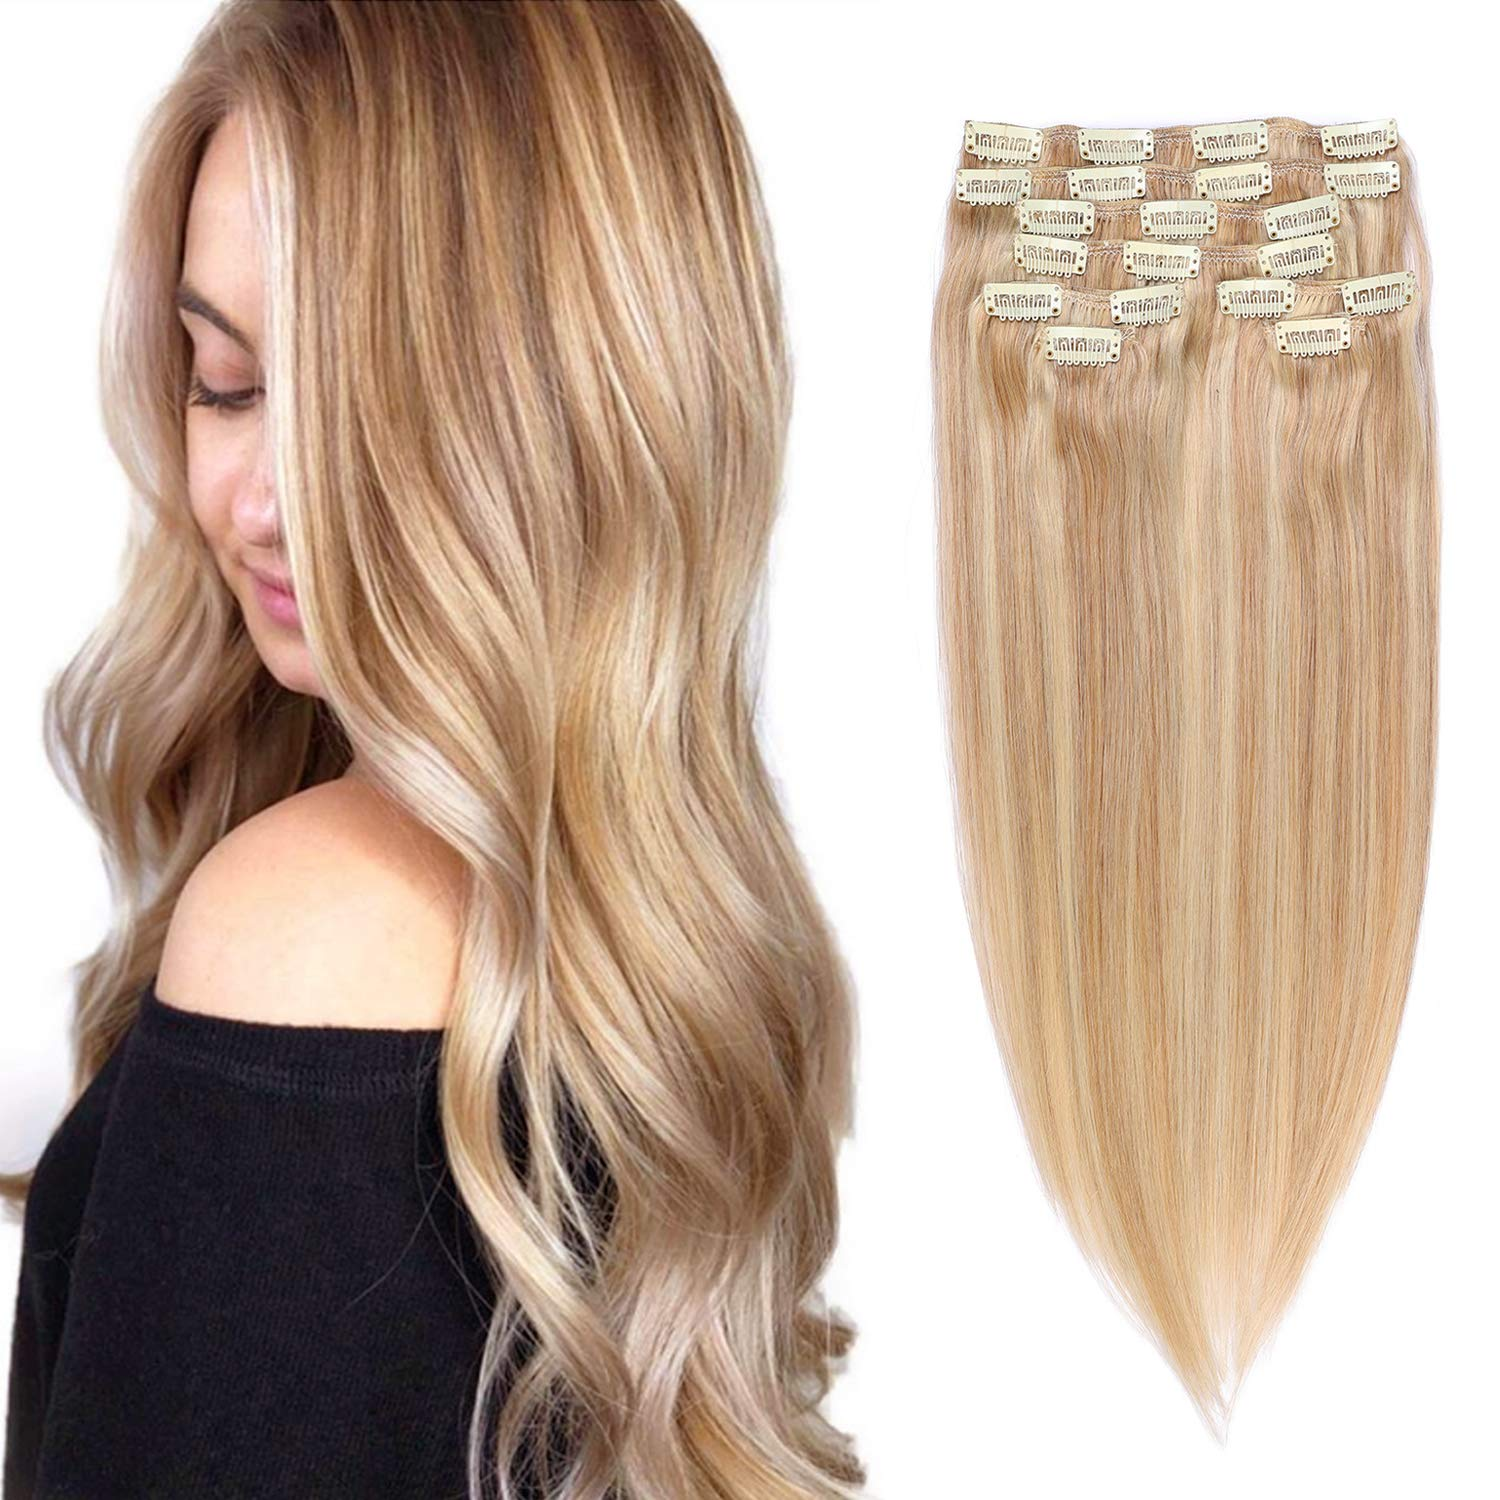 Remy Clip in Hair Extensions Strawberry Blonde with Blonde Highlighted Clip in Real Hair Extensions Human Hair Double Weft Straight Clip on Hair Extensions for Women 8Pcs 18 Inch 140G